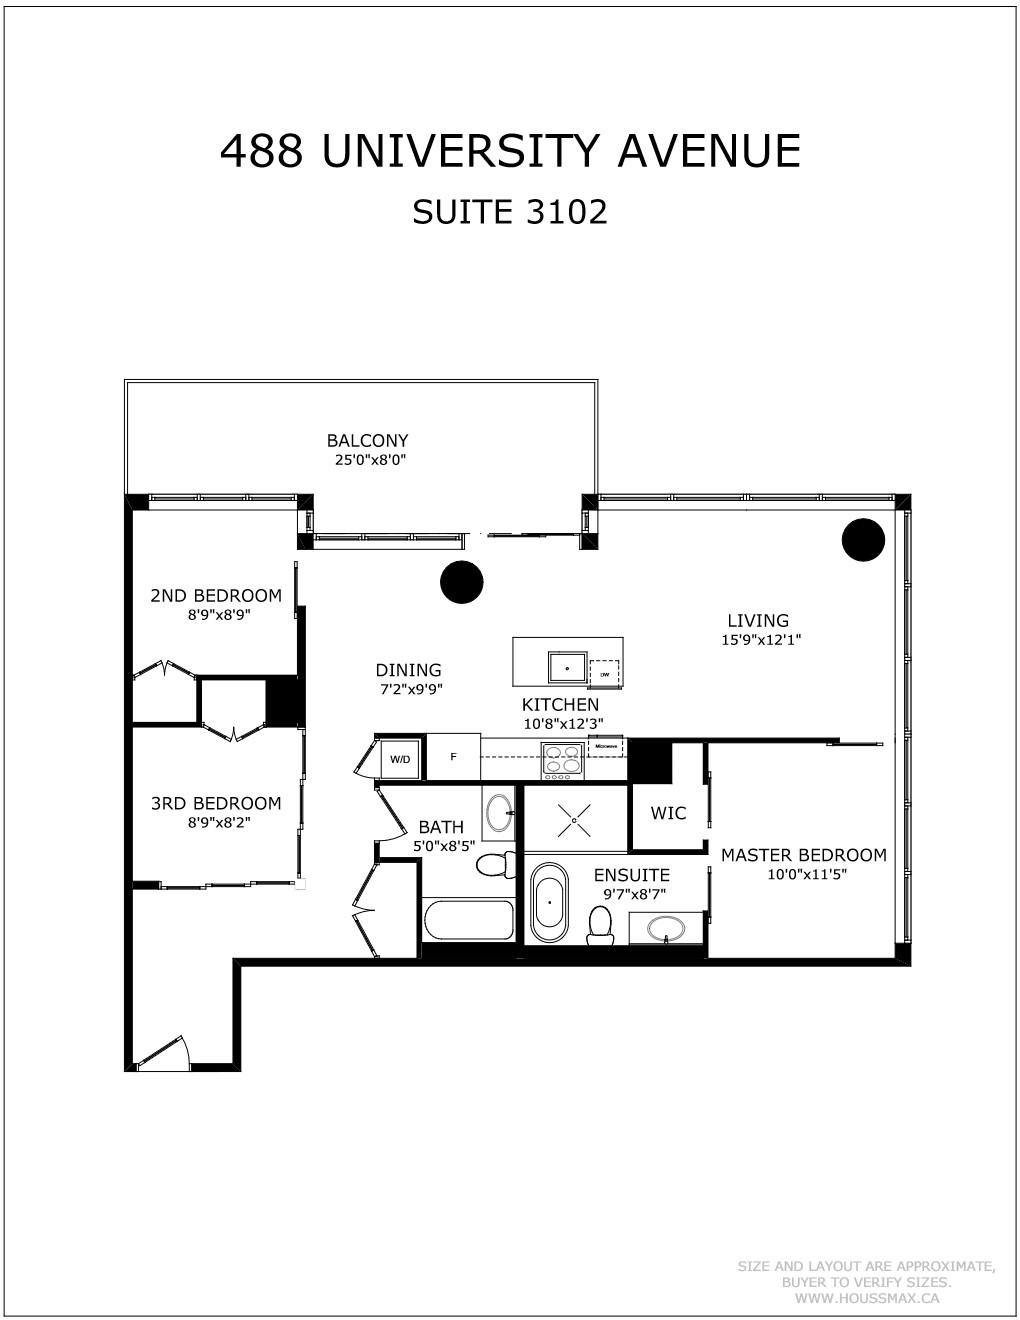 Floor Plans for 488 University Ave Unit 3102